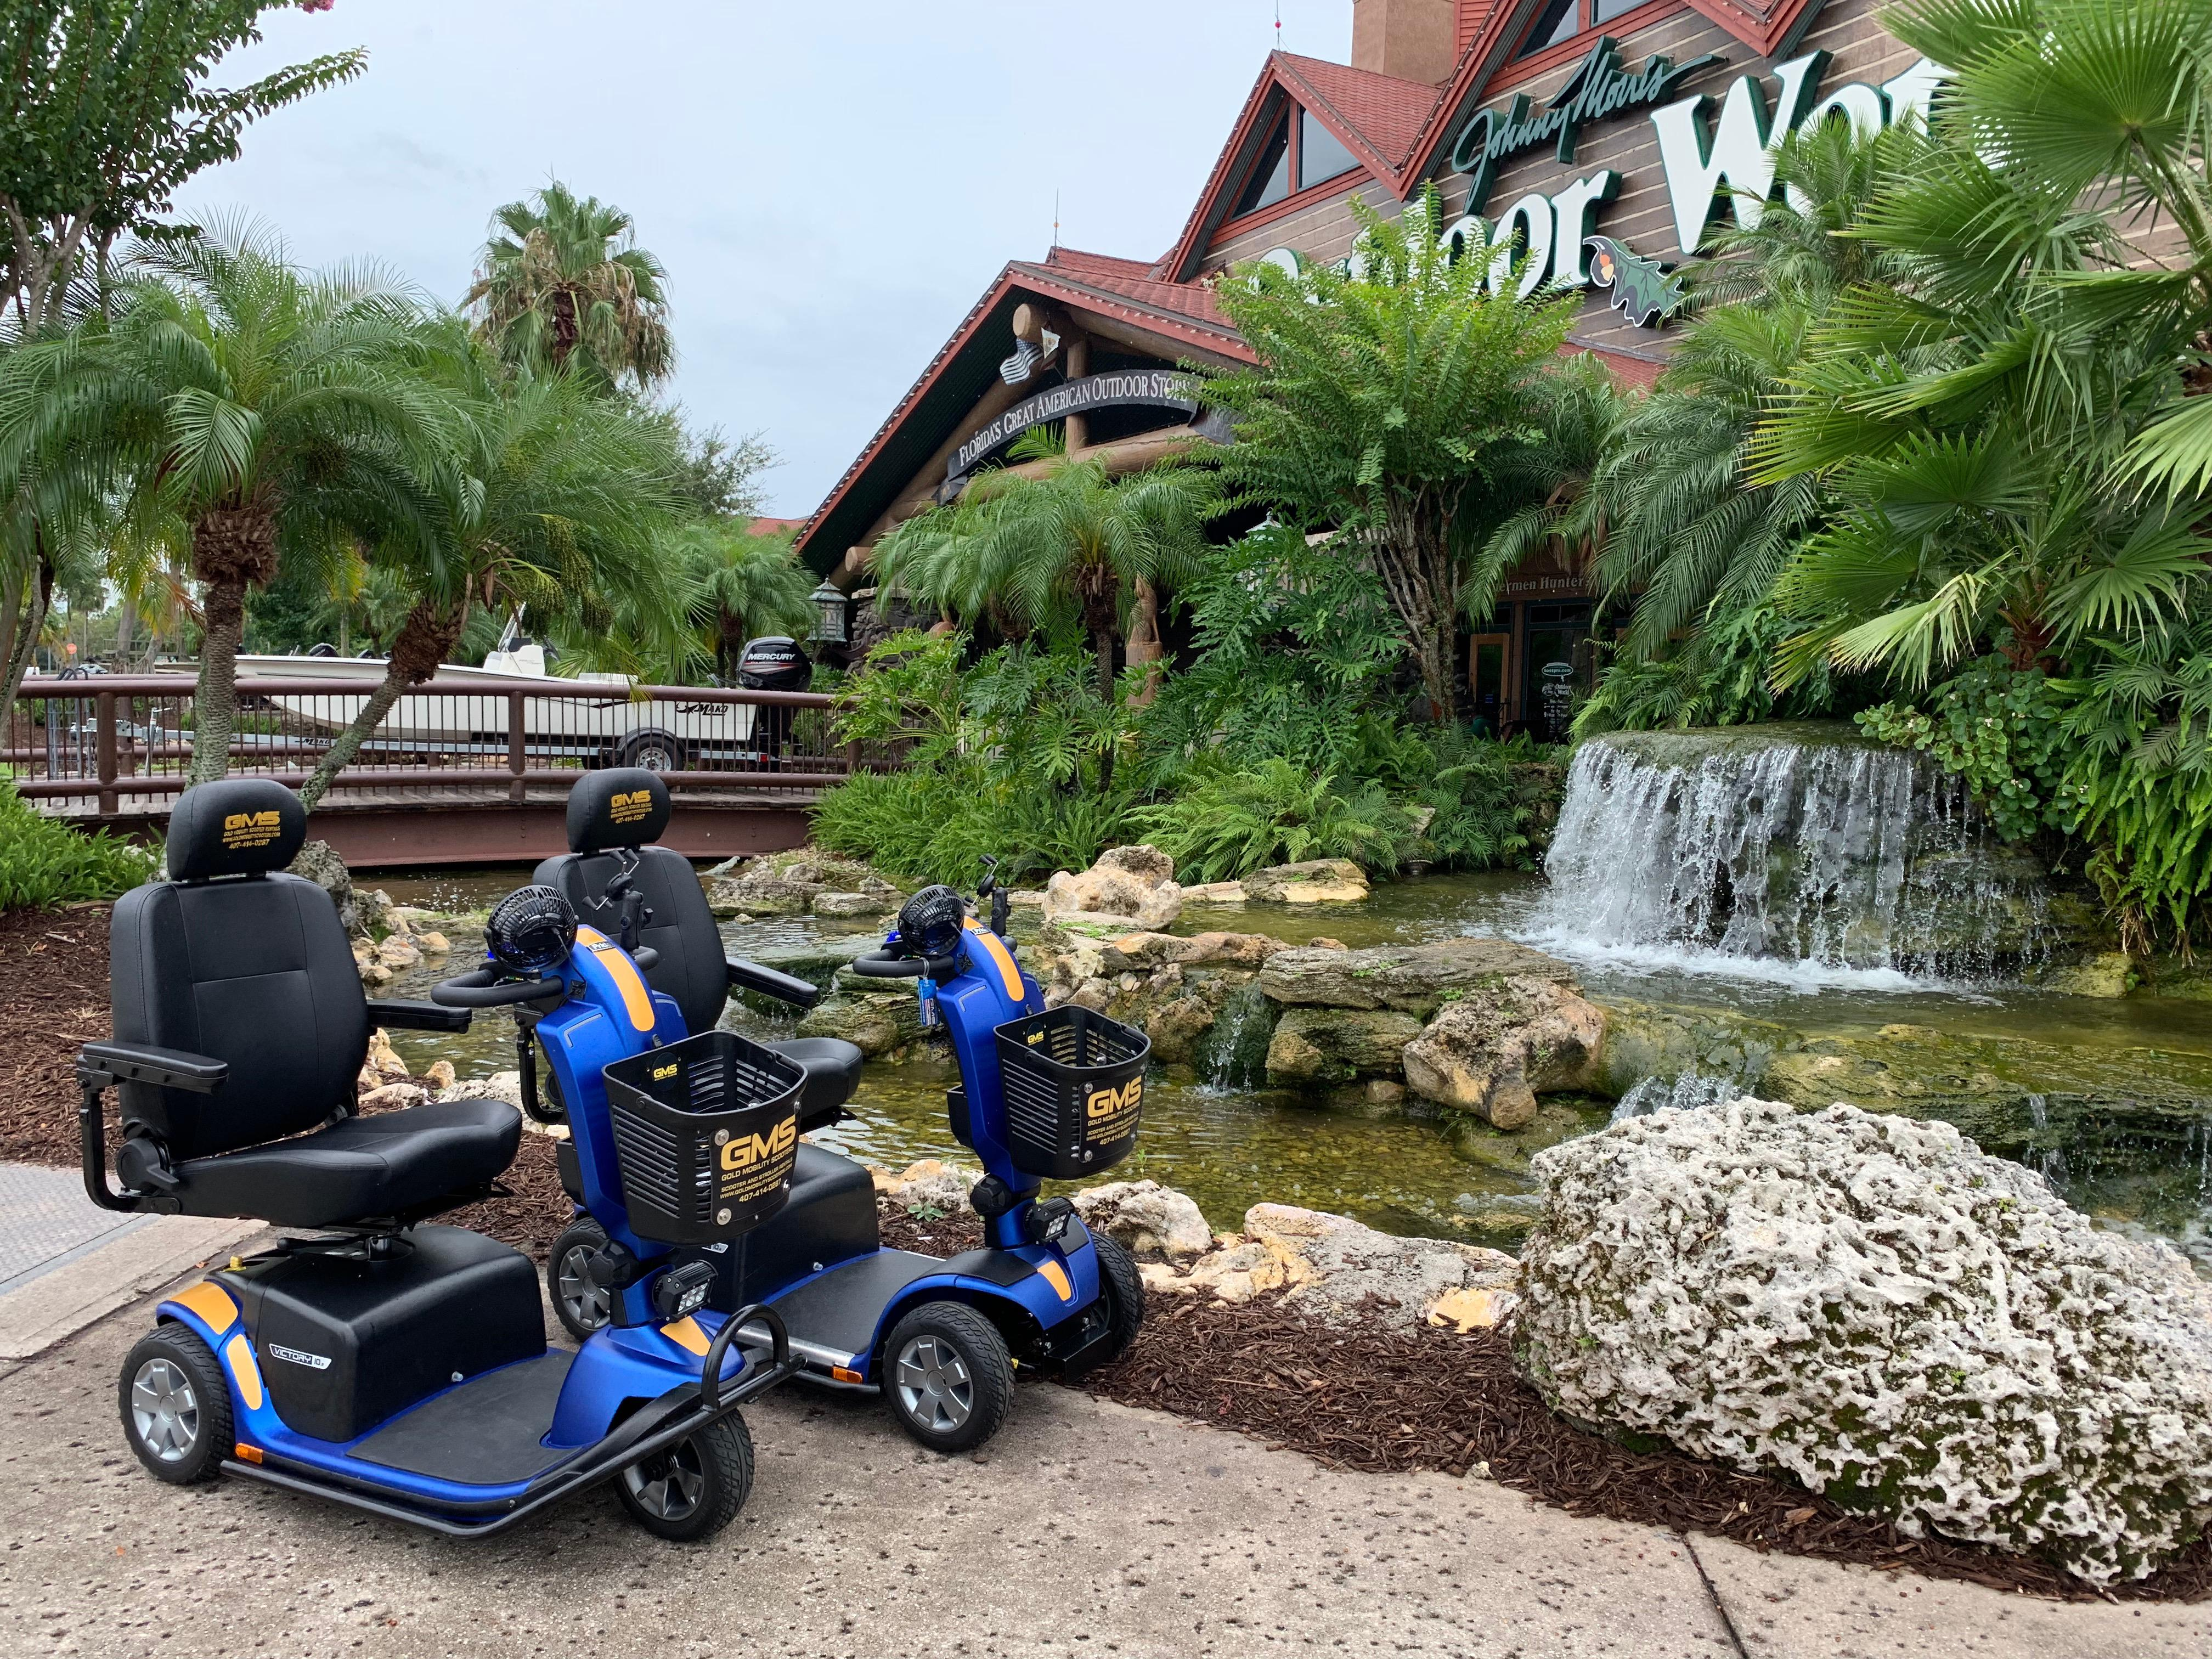 Scooter rental in Orlando Florida  by Gold Mobility Scooters. We sell and rent top of the line Pride Mobility Scooters in our rent a scooter line. Theme Parks and Orlando Florida Area scooter rentals. Best rental Prices, Premium brand new scooters for rent, Free Delivery and Pickup, Free Damage Waver, Free Accessories, and Custom upgrades. 5 star rated scooter rental company. Scooter Rental info at https://goldmobilityscooters.com or Call us at 407-414-0287